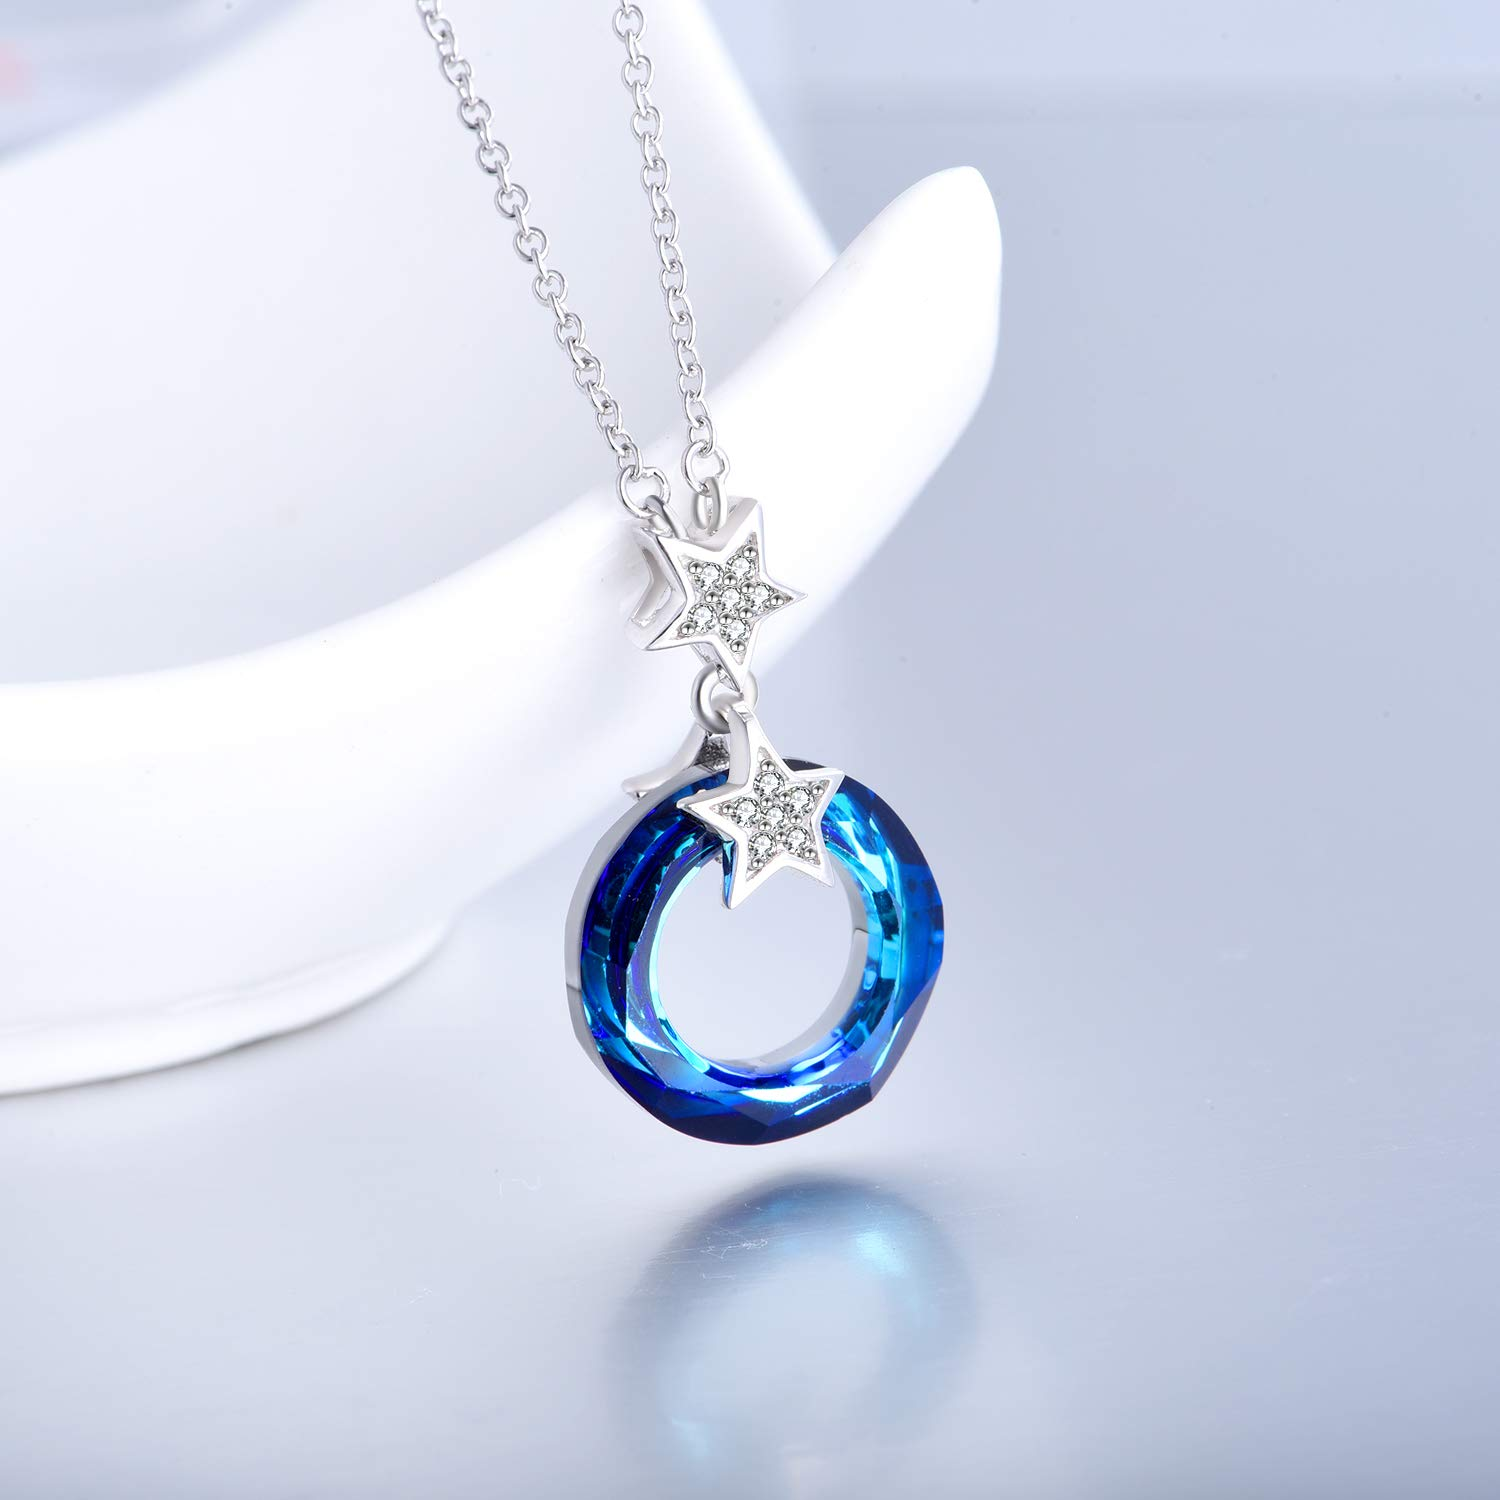 AOBOCO Blue Circle Crystal Necklace 925 Sterling Silver Chain, Multi Color Round Simple Pendants with Swarovski Crystals Fine Jewelry Gift for Women Girls Teens